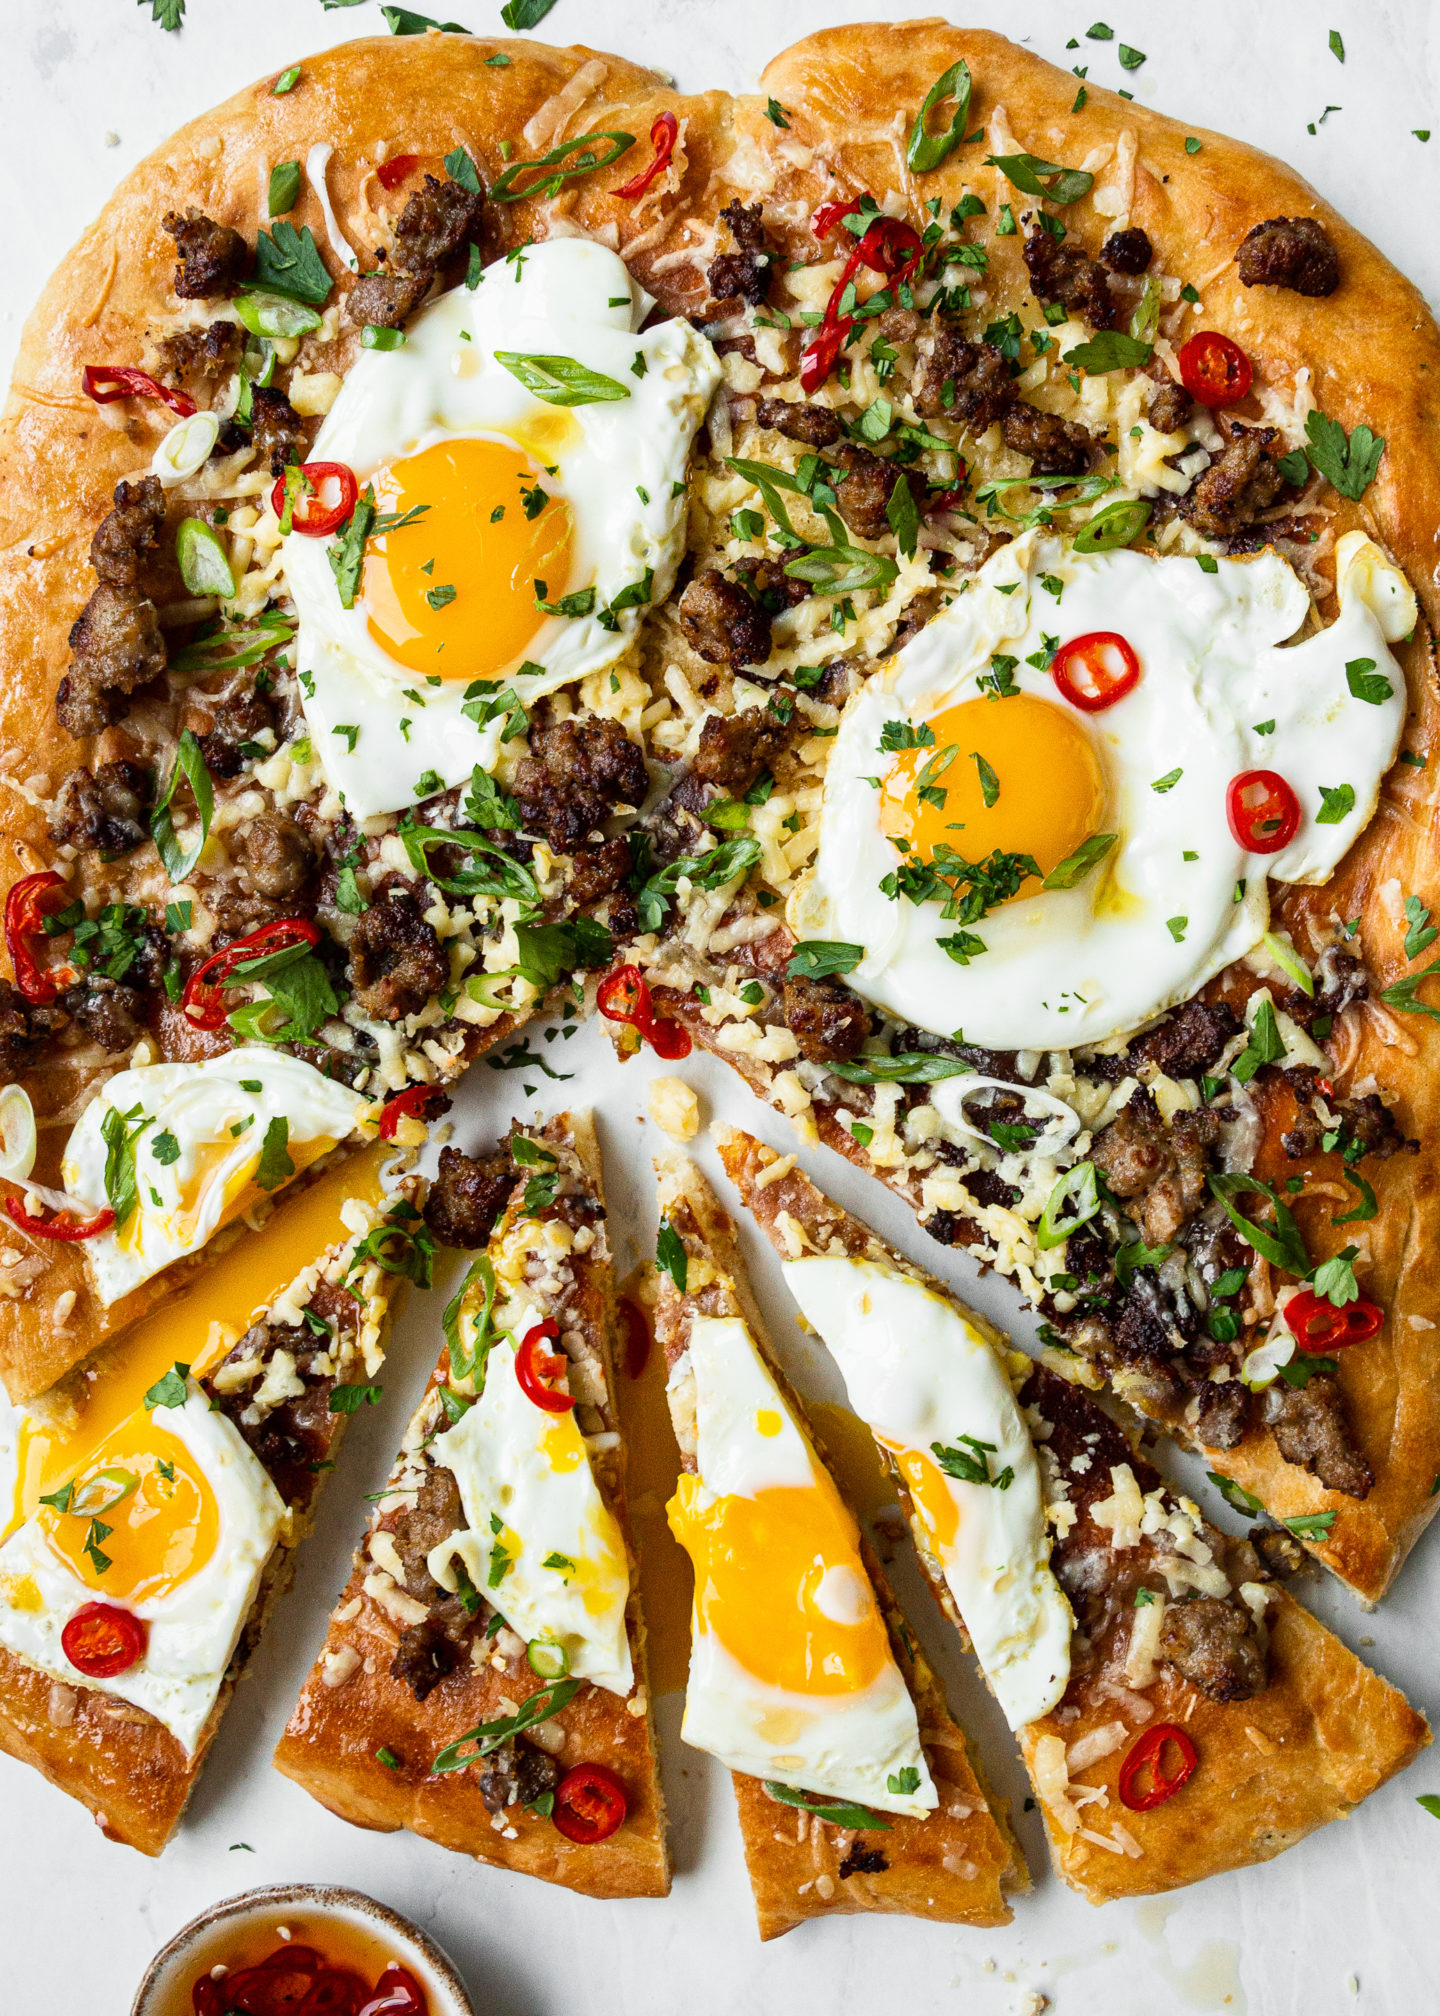 Sausage, Cheddar, and Egg Pizza with Chili...